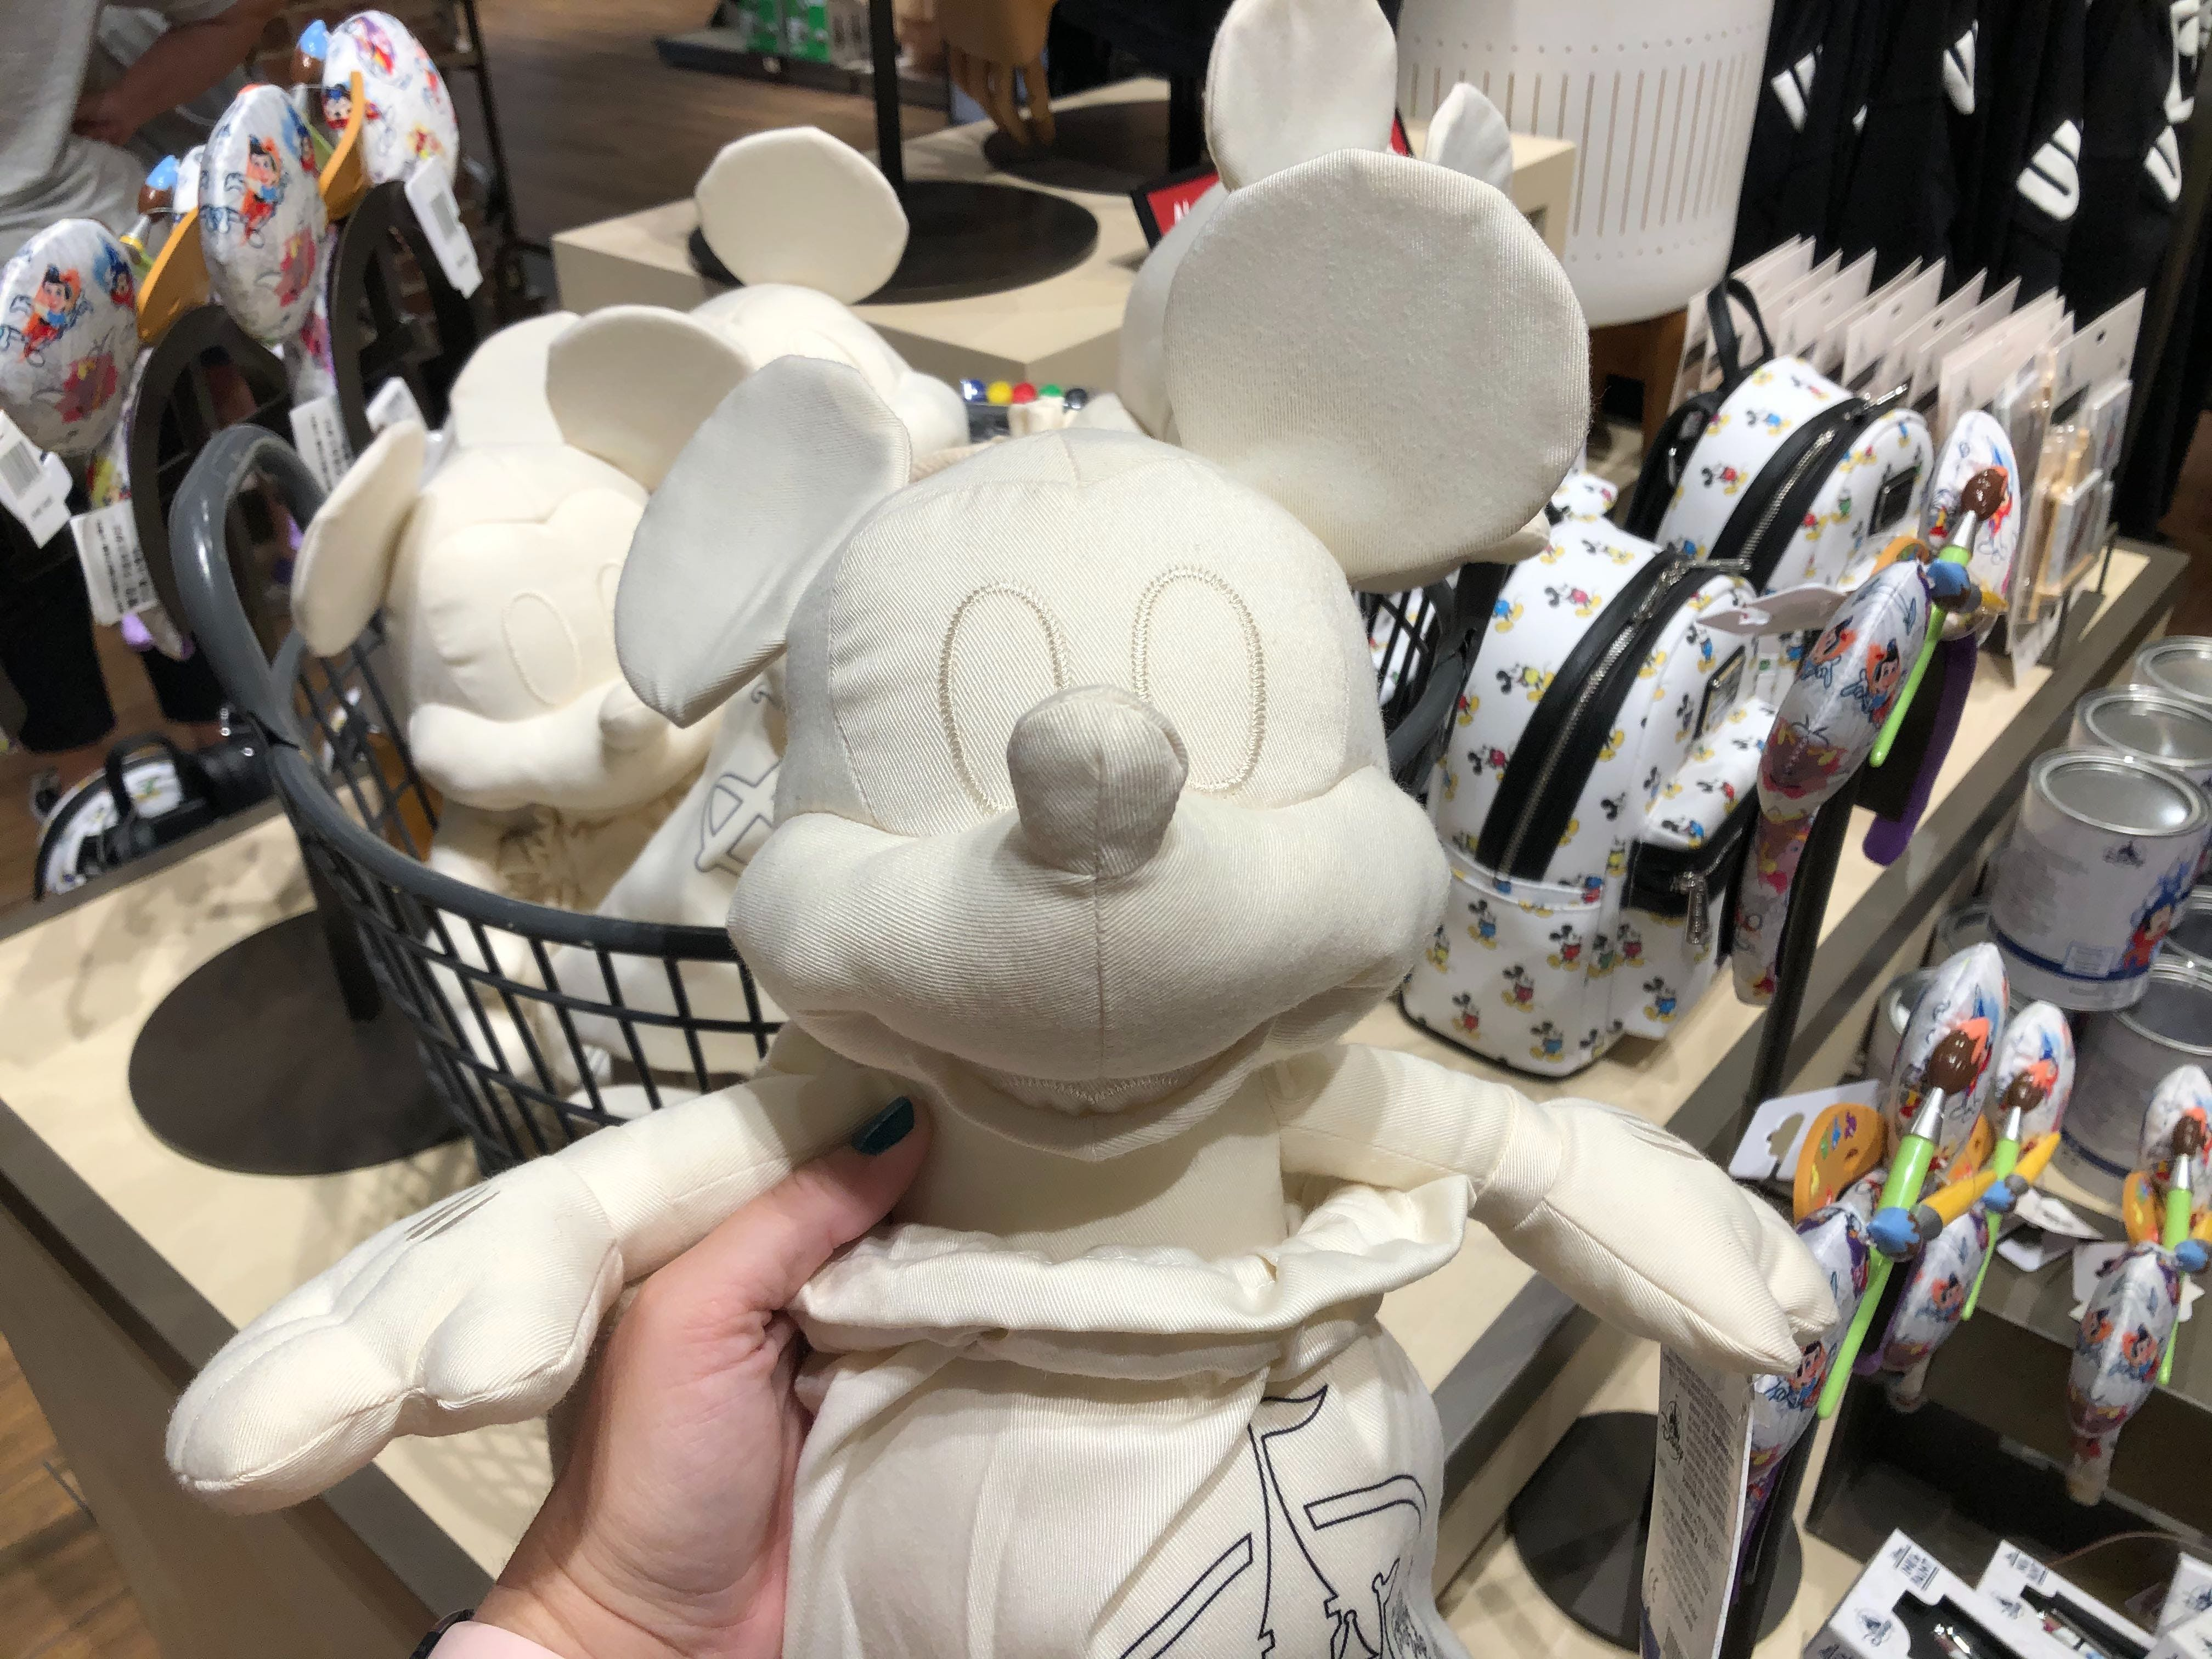 Details about  /NEW INK AND PAINT DISNEY PARK WAVE 2  MICKEY PLUSH MYSTERY REVEALED —HOT PINK